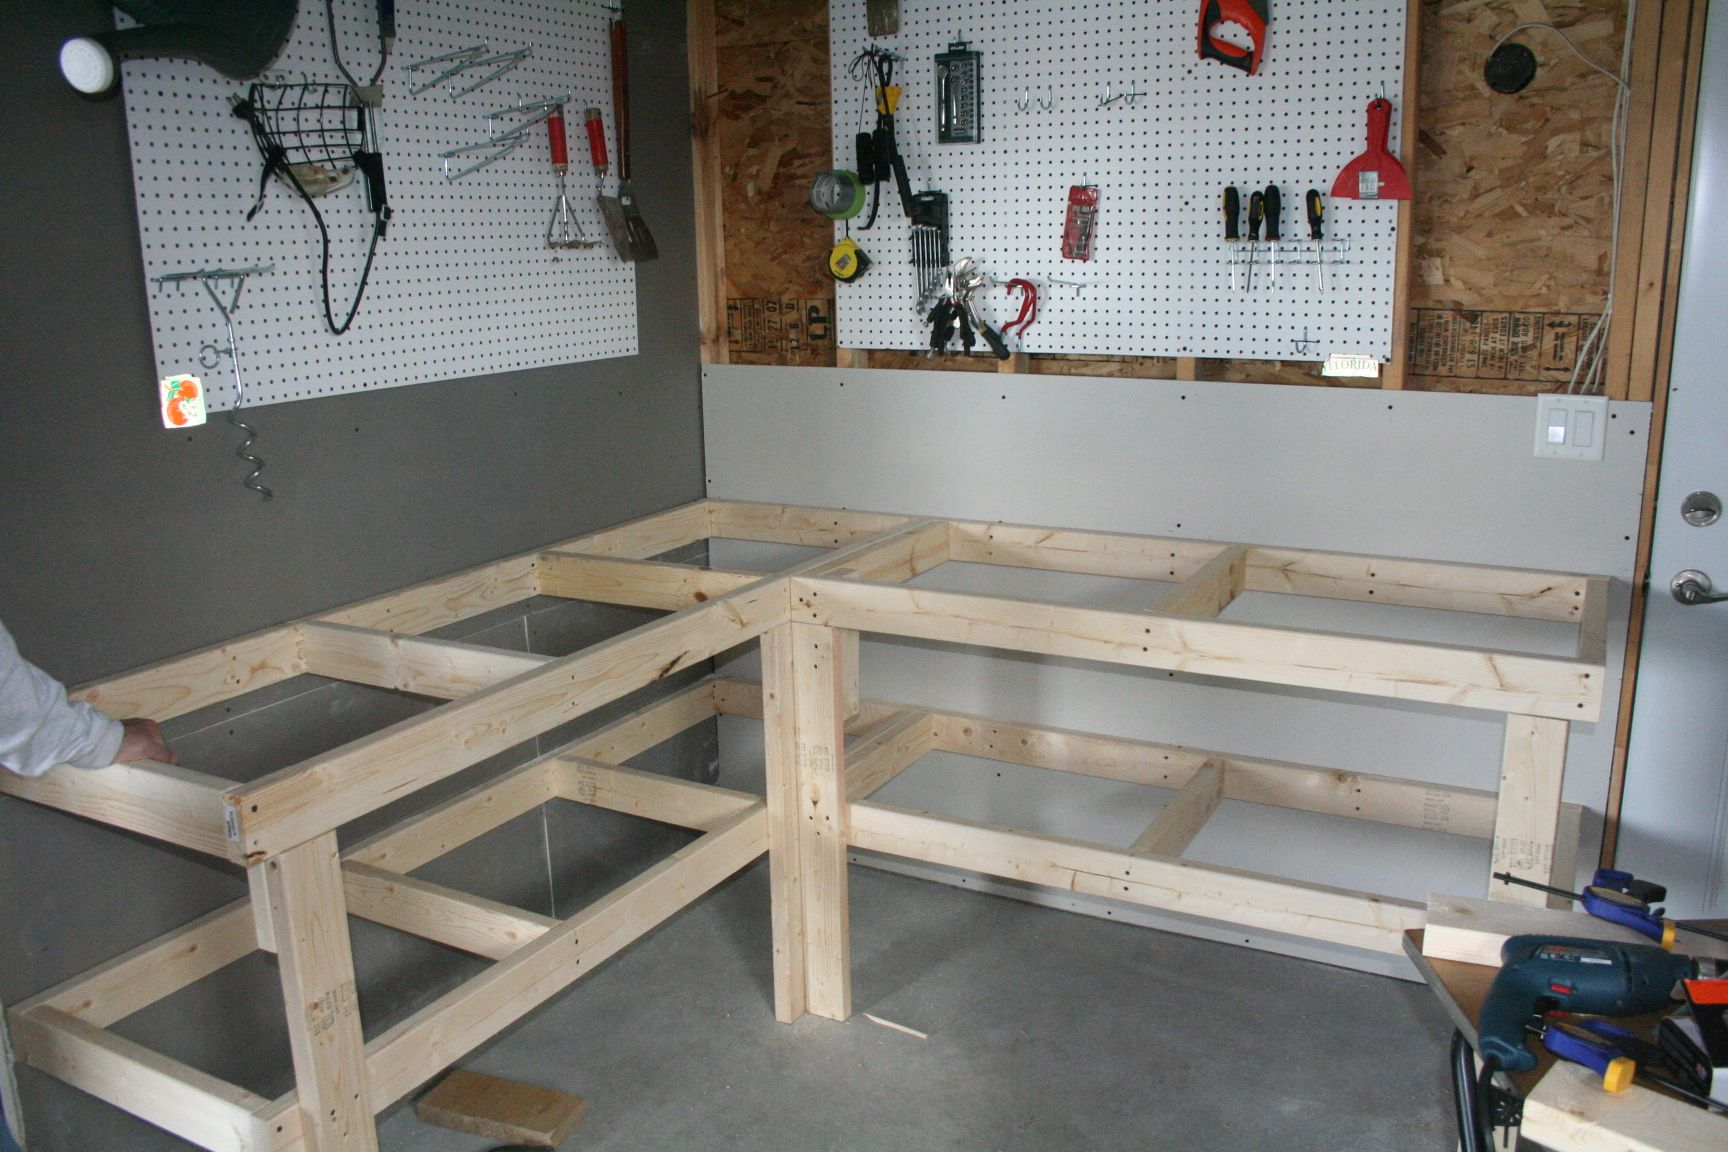 Plans to Build a Wood Bench